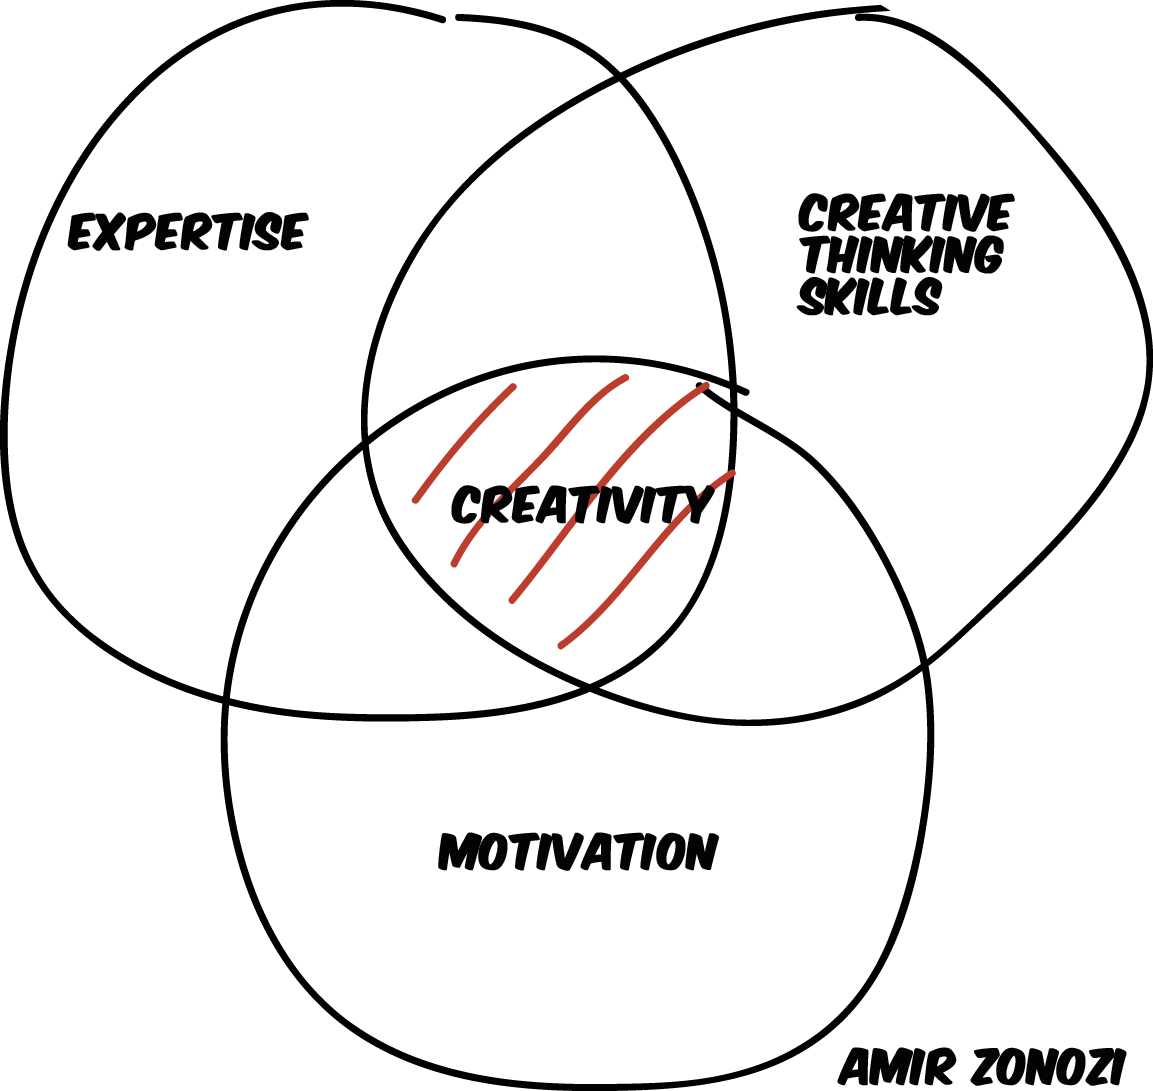 Breaking Down The Components Of Creativity